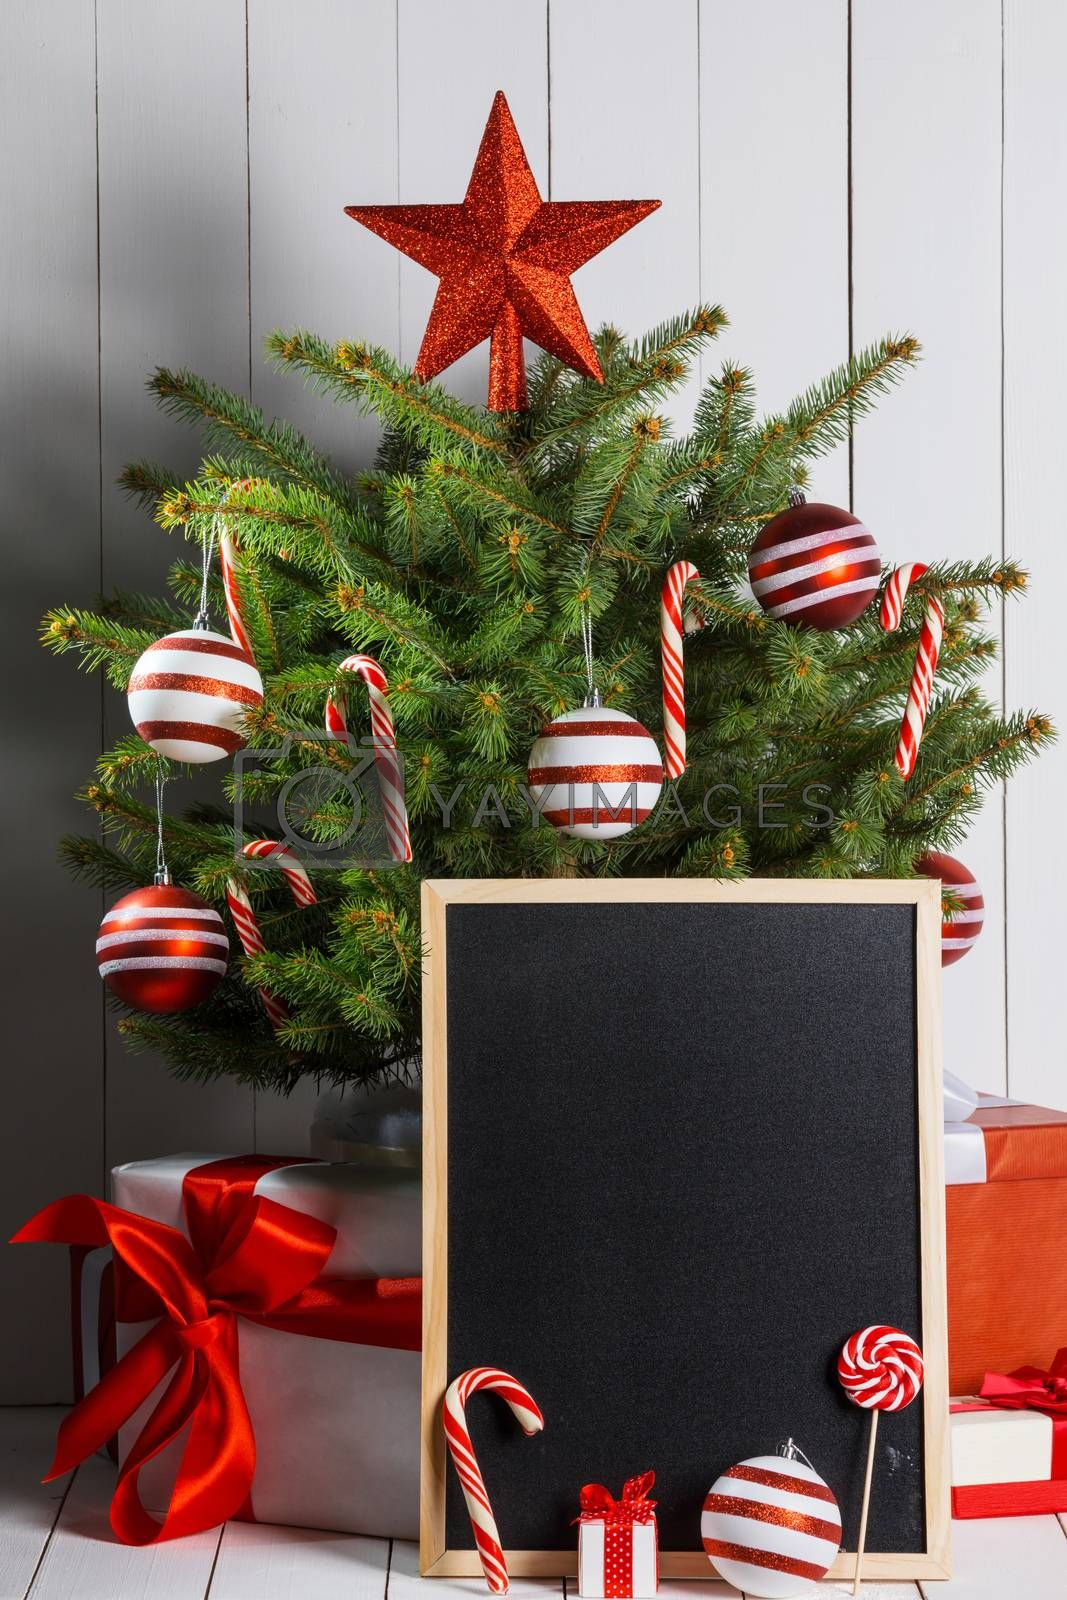 Rustic chalkboard and christmas tree decorated with candy canes and baubles